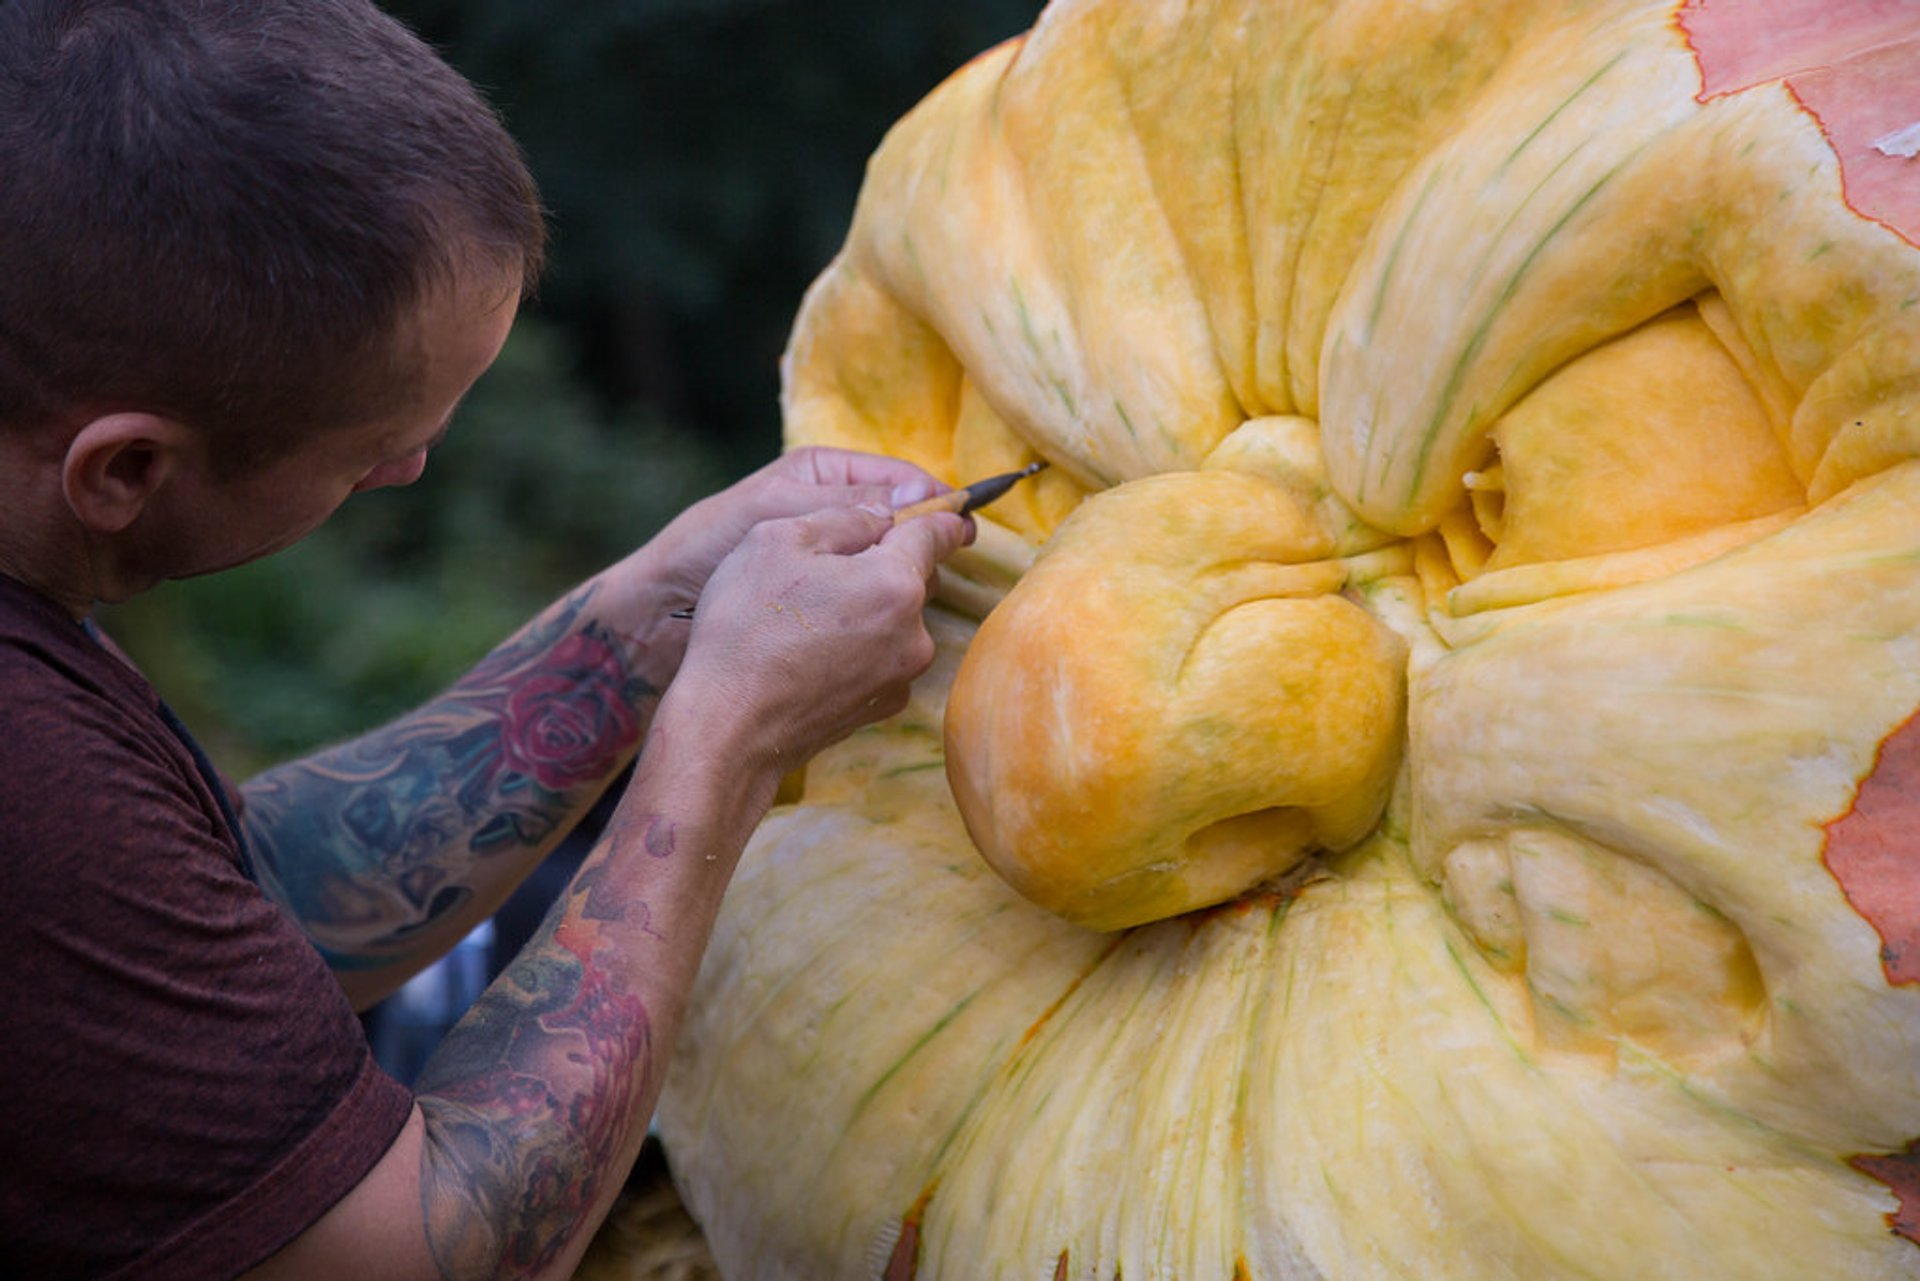 Ludwigsburg Pumpkin Festival in Germany - Best Season 2020